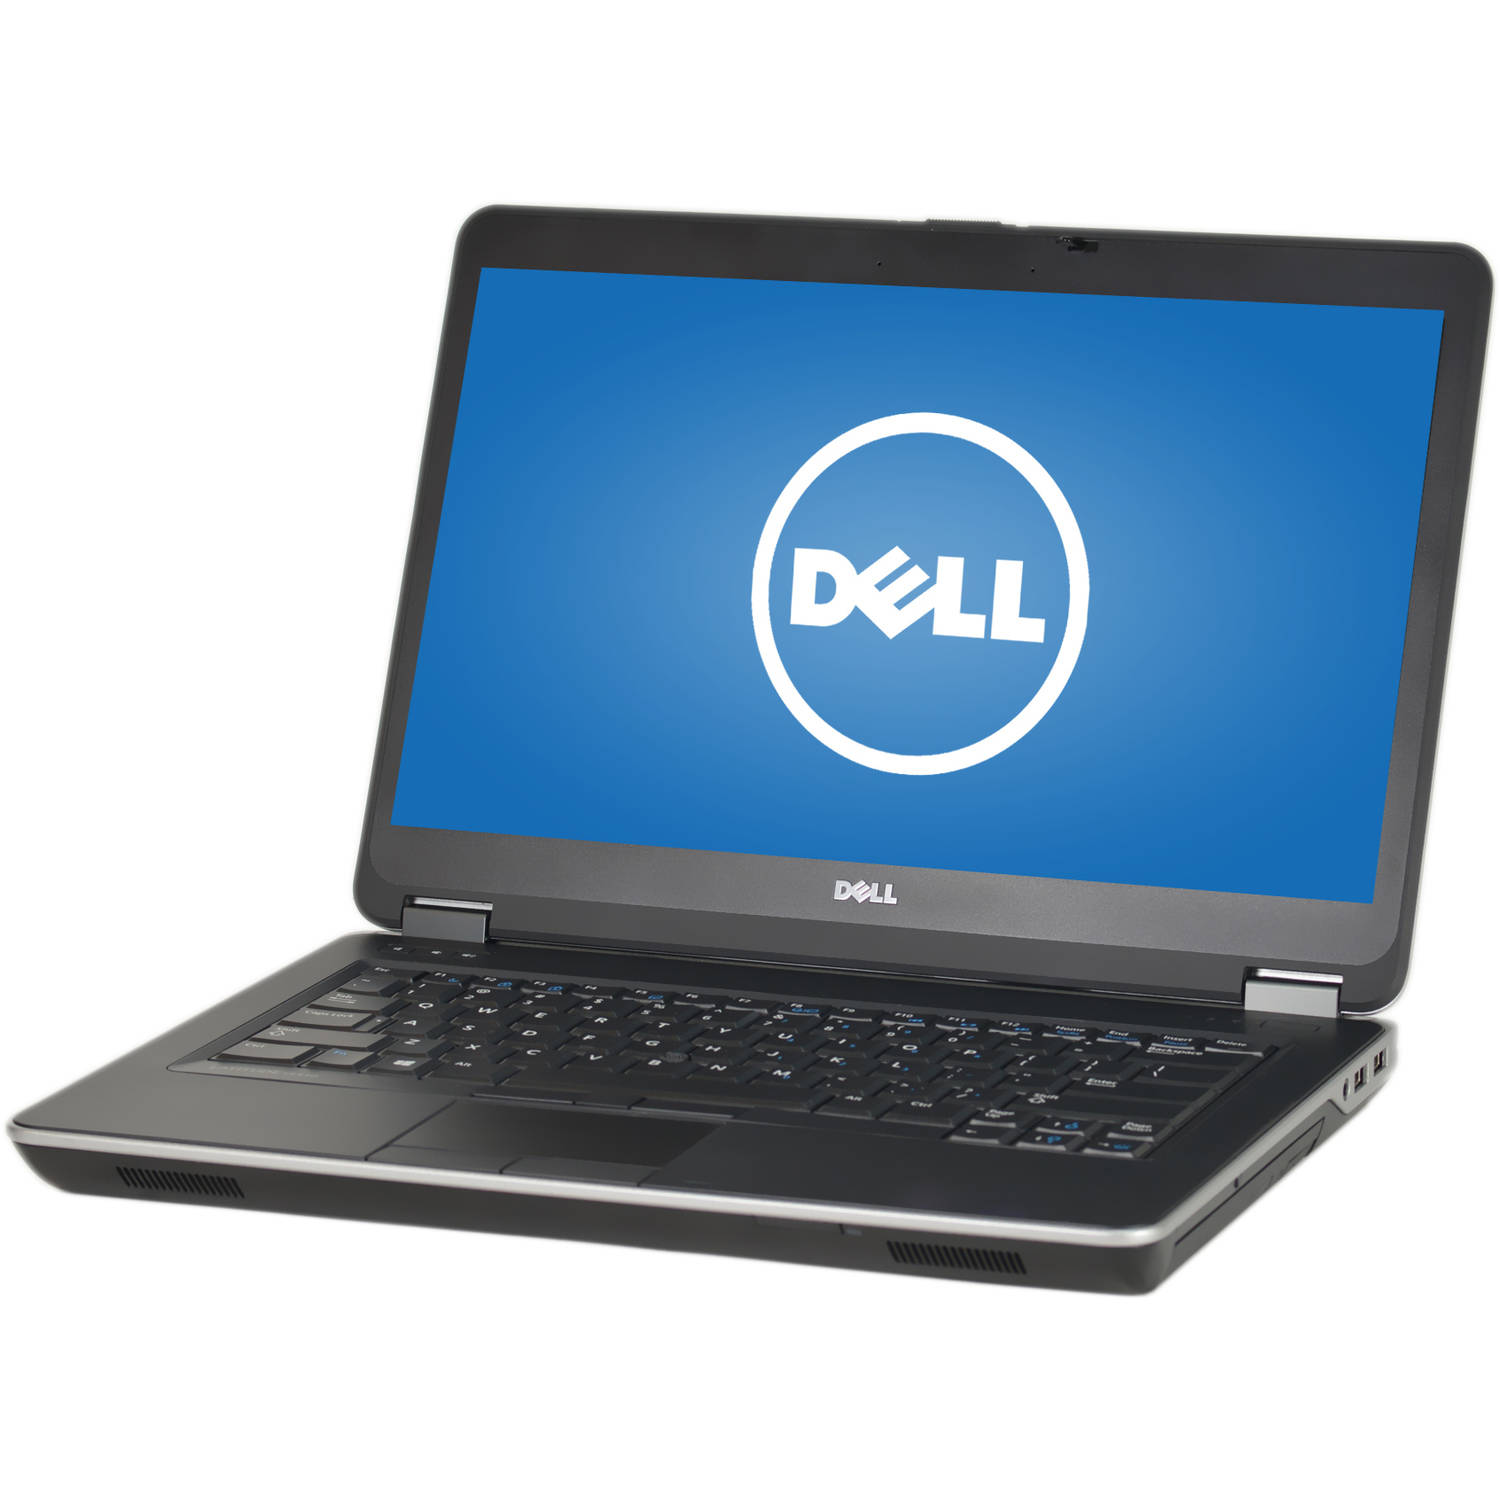 72x Dell Latitude E6440 - Core i7-4600M - 189 Eur